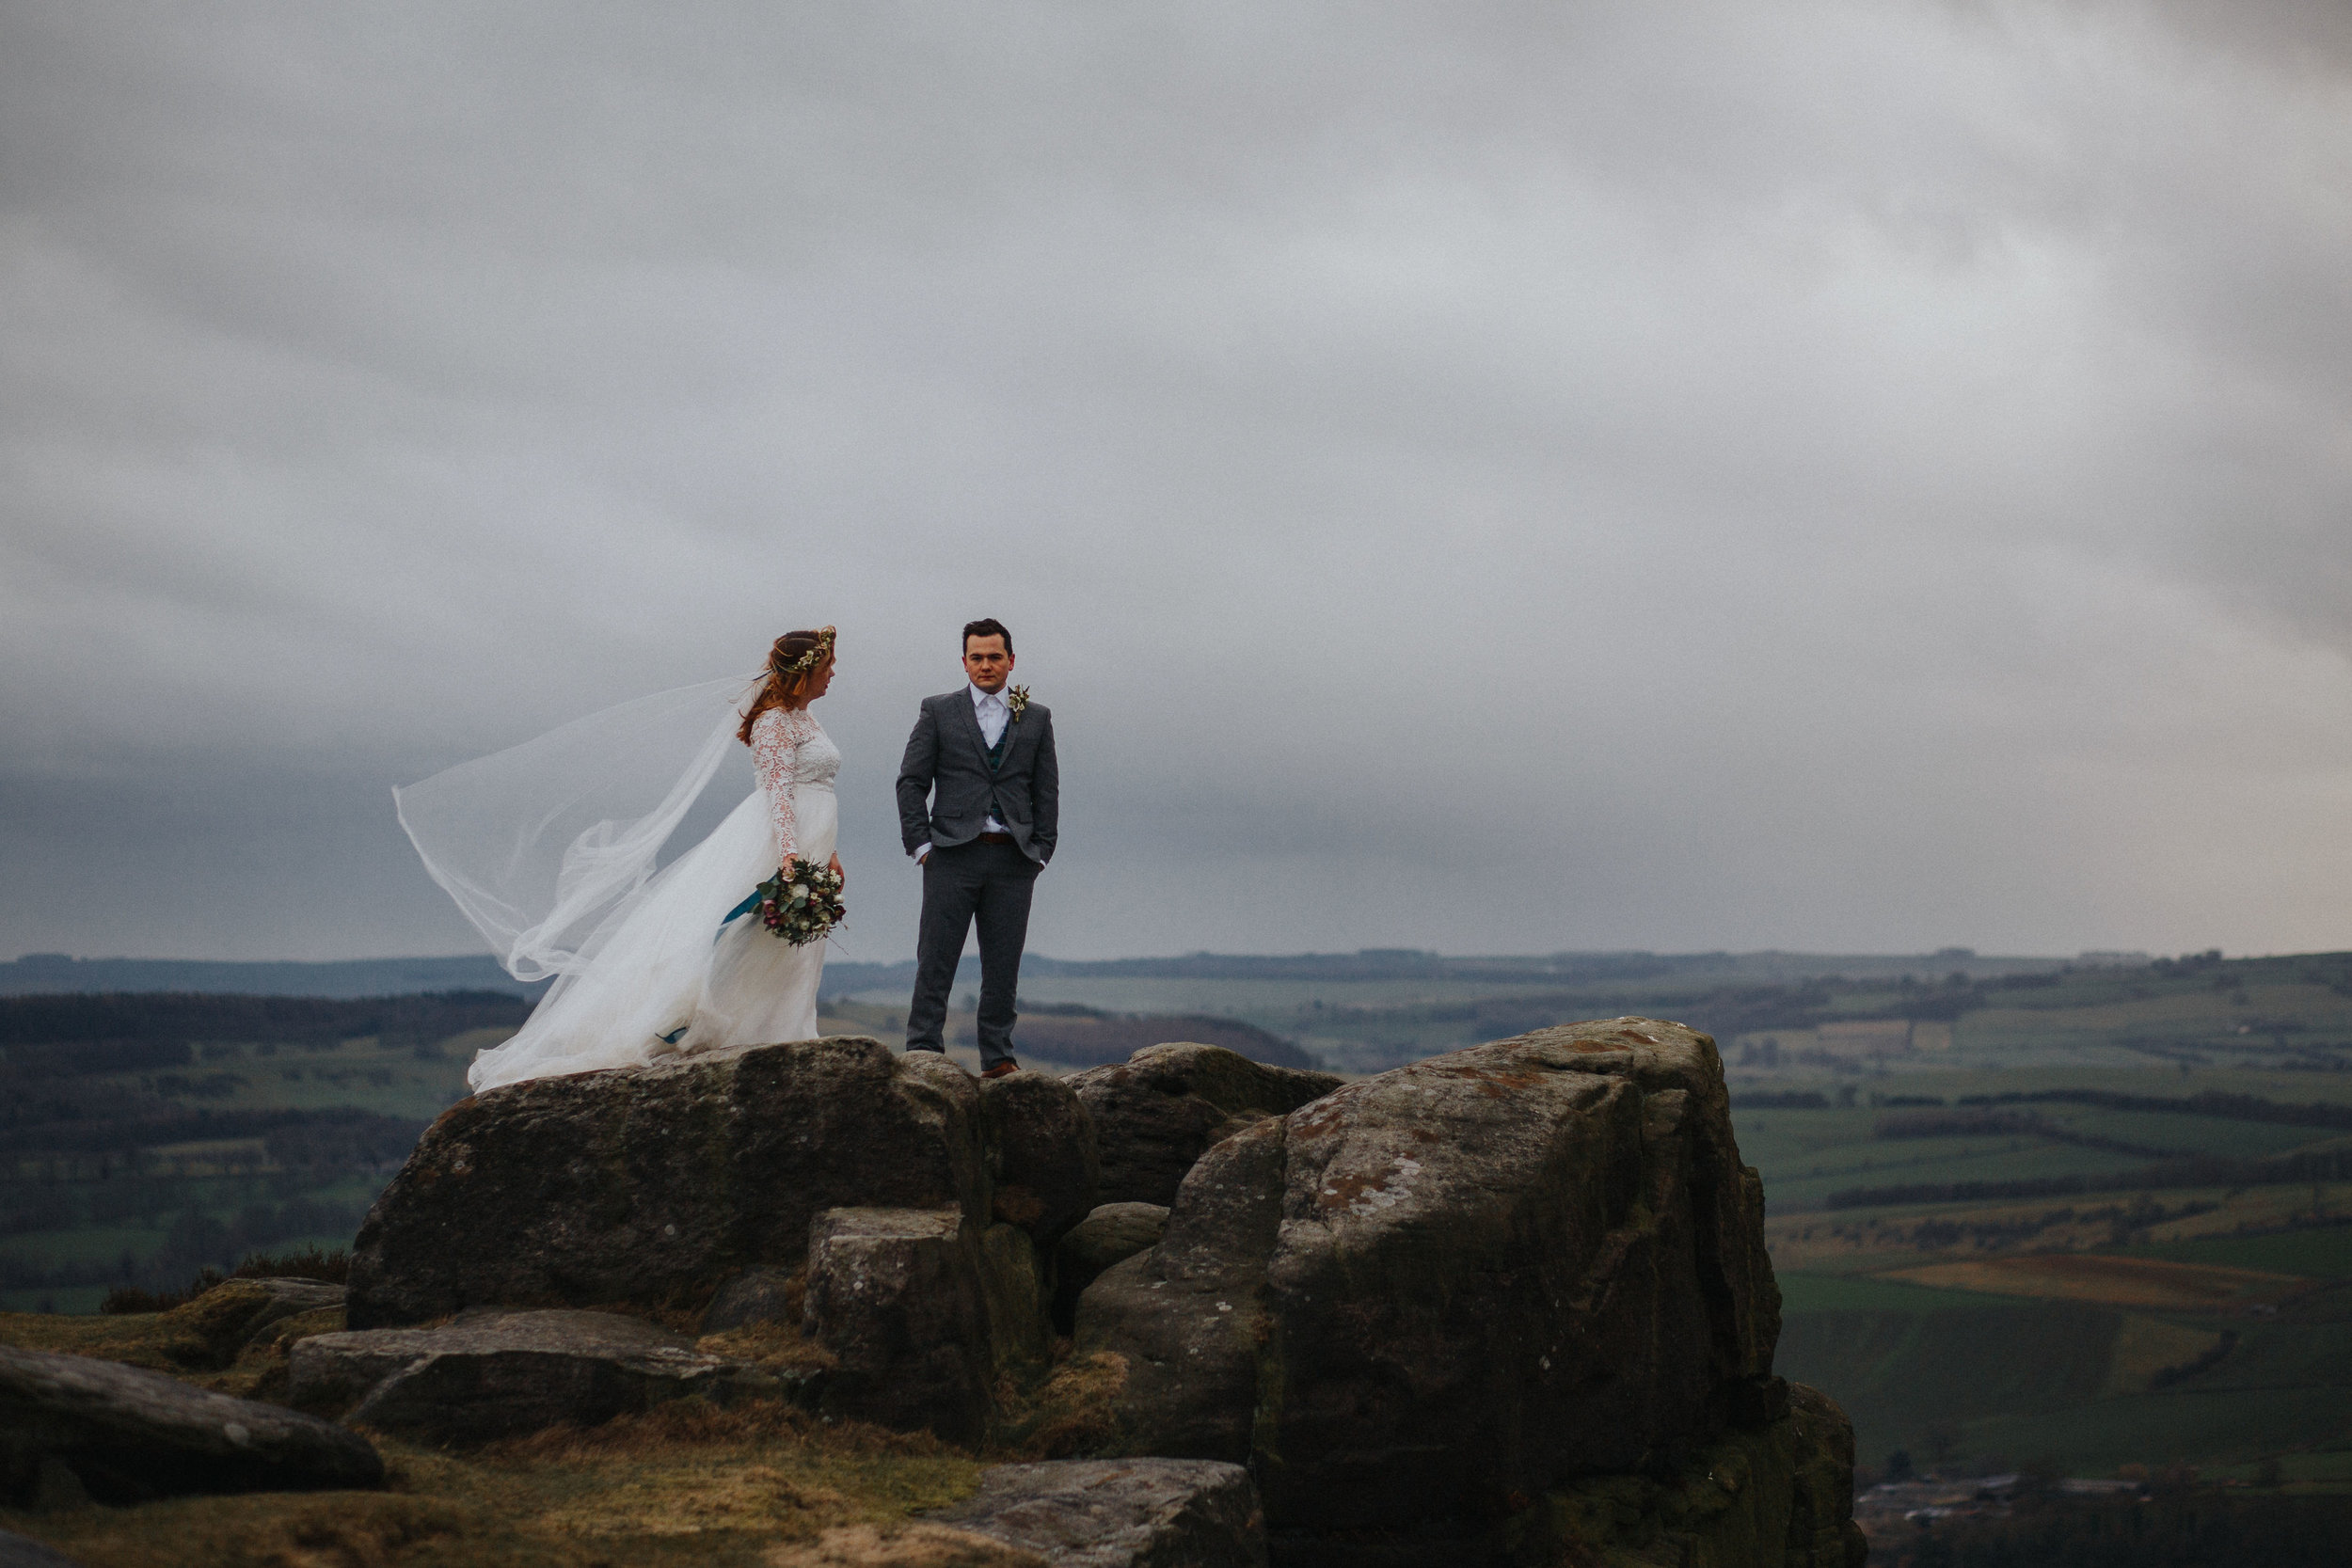 Rosie-peak district-bride-bespoke-long sleeved-lace-tulle-winter-wedding-dress-matlock-susanna-greening-20